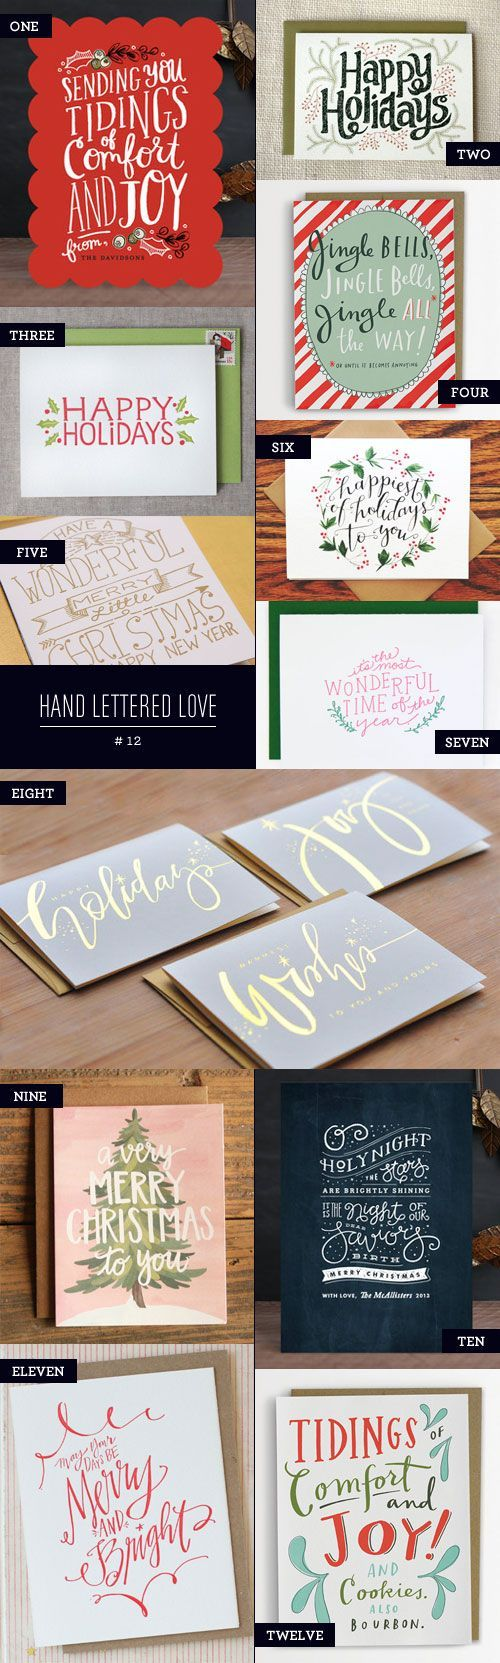 Hand Lettered Love #12, Holiday Card Edition - Paper Crave